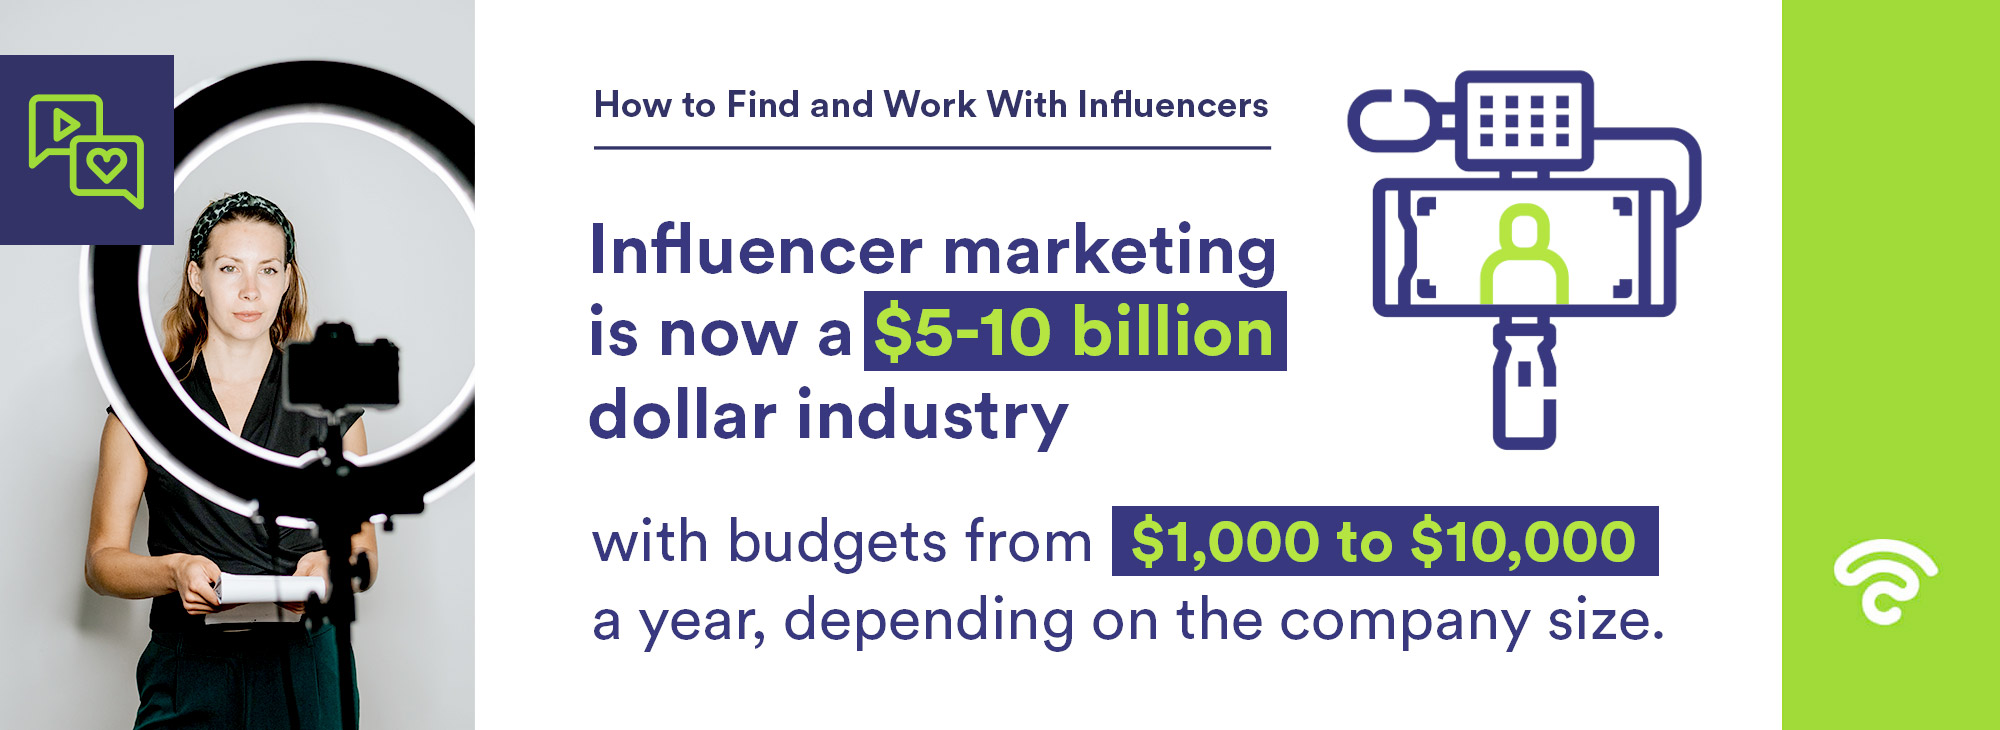 How-to-Find-and-Work-With-Influencers